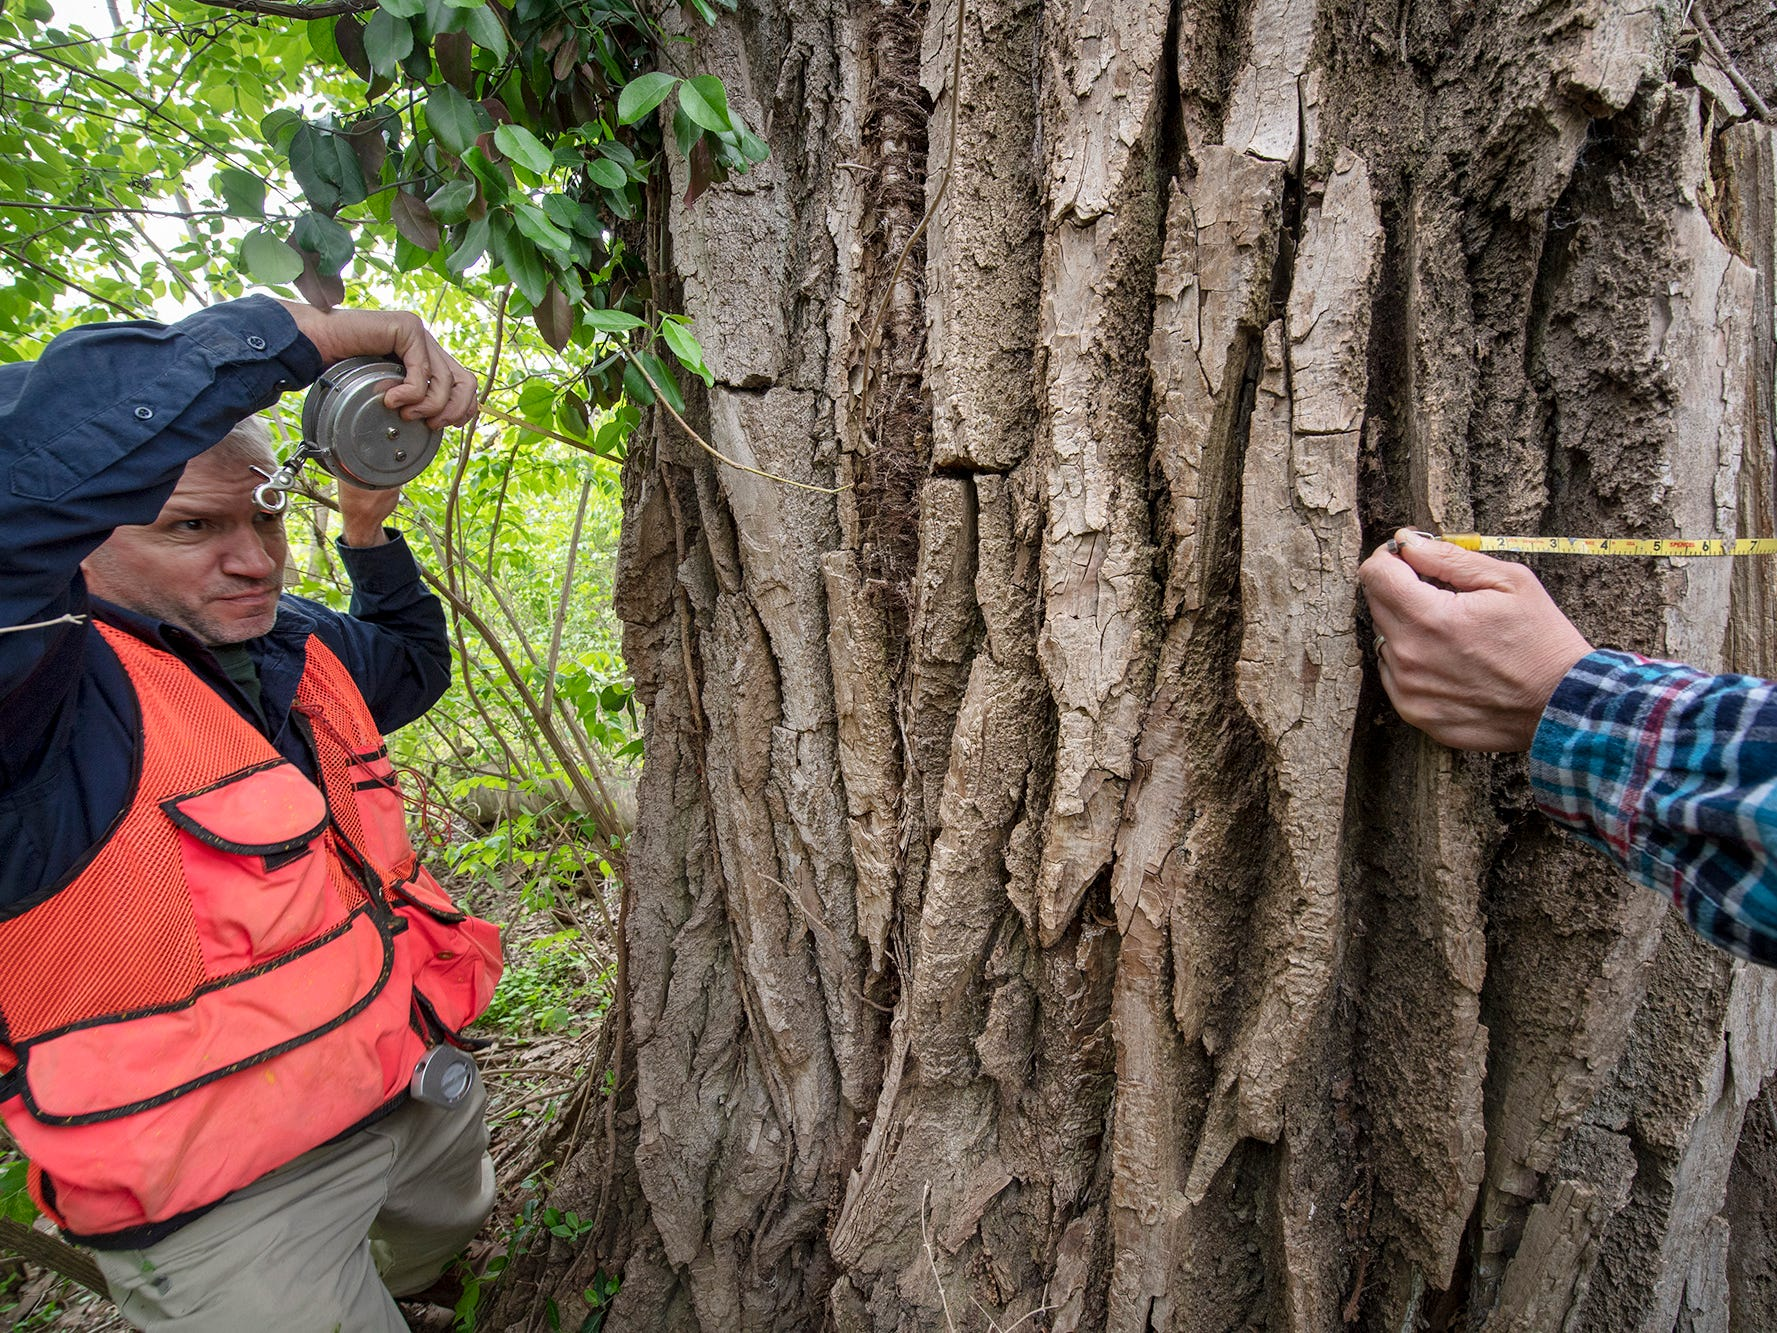 Matt Kern, a forester with the state department of conservation and natural resources, wraps his tape measure around the largest tree in York County and one of largest Cottonwood trees in the state at Magnesita Refractory Co. in West Manchester Township. The diameter of the tree is over 23 feet.